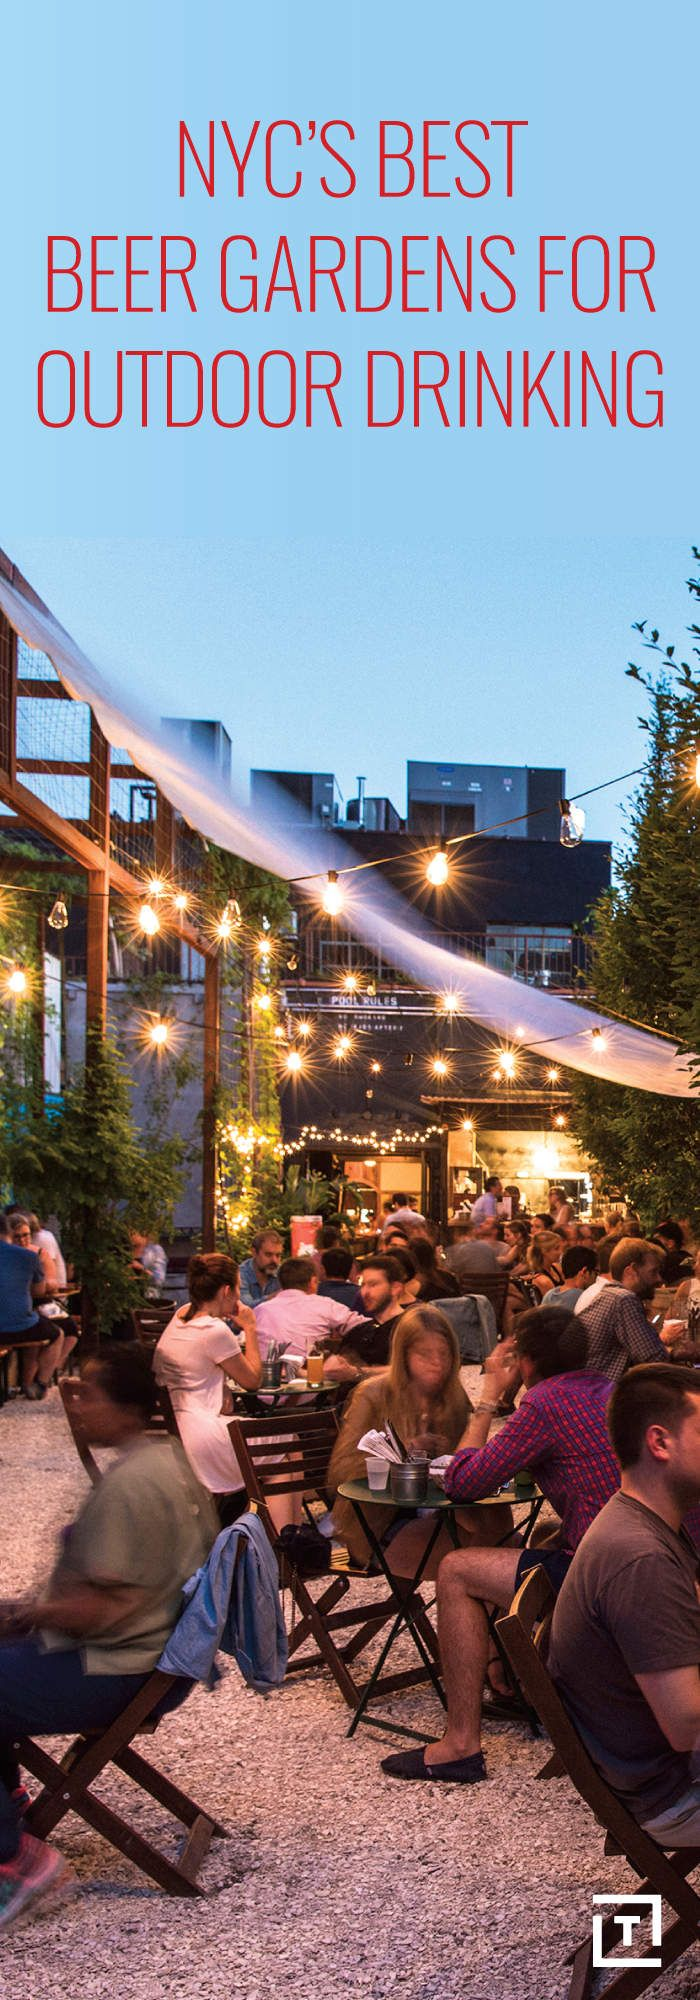 NYC's Best Beer Gardens for Outdoor Drinking